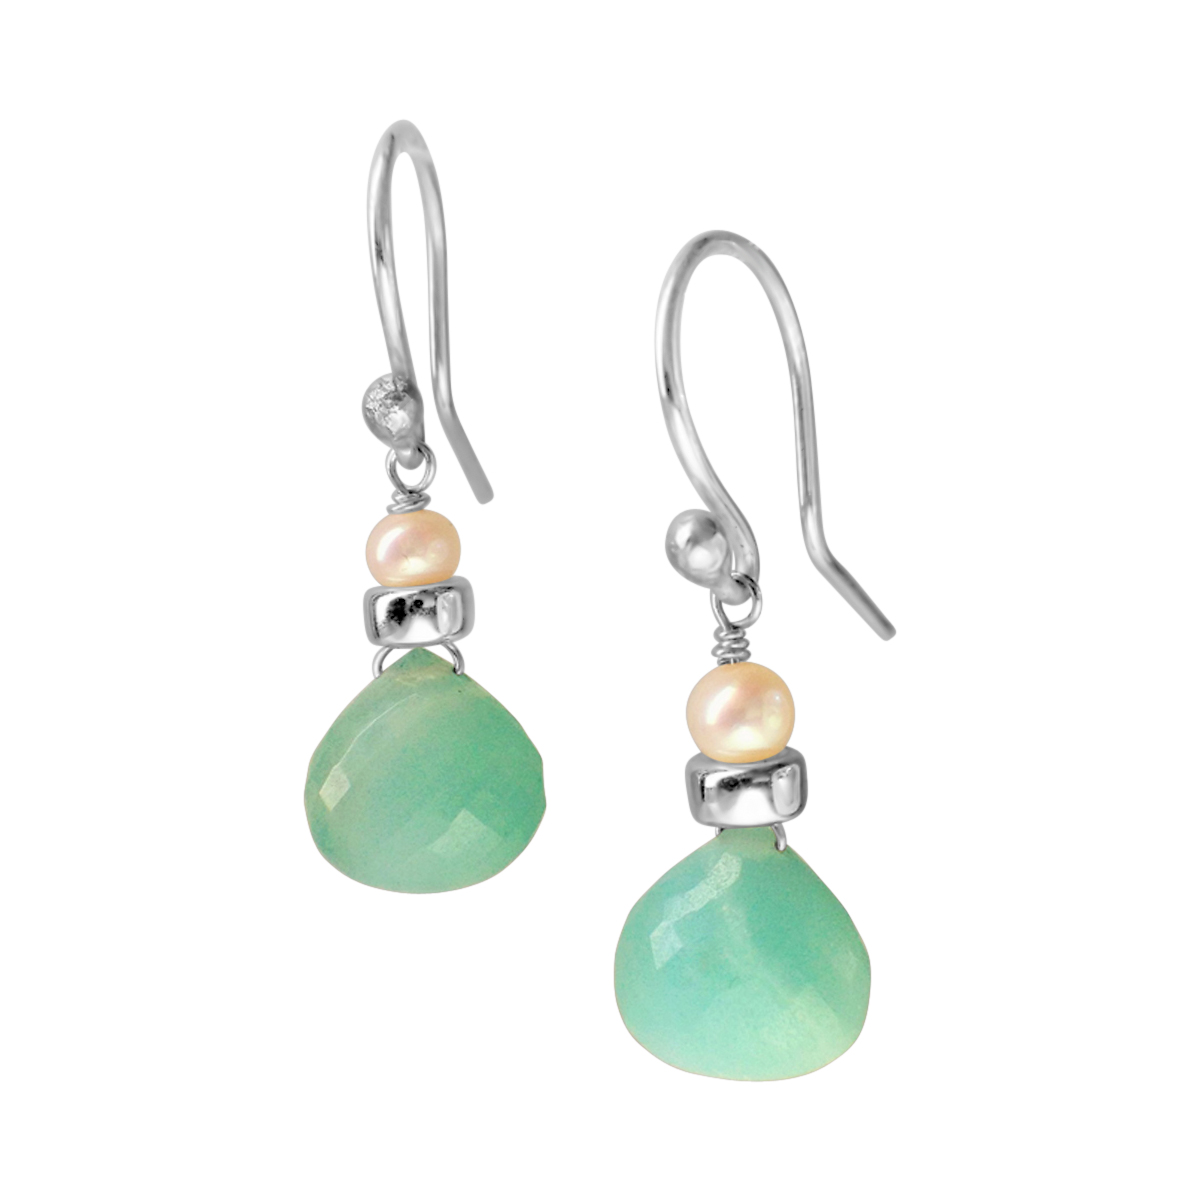 Perfume Bottle amazonite earrings